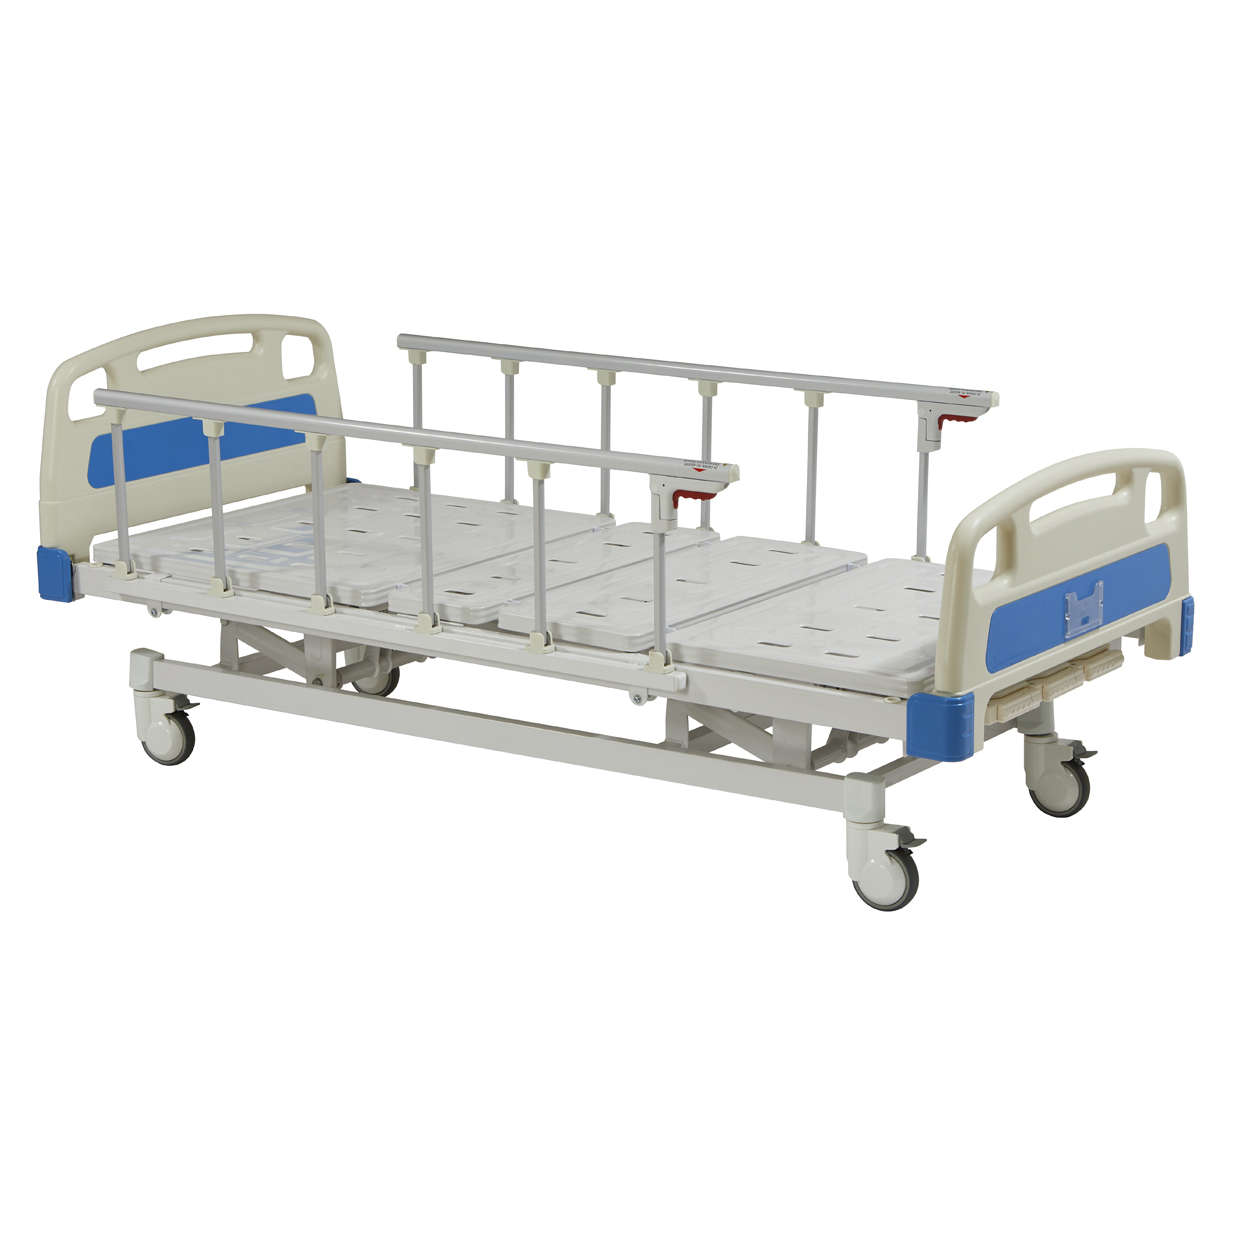 three function electric medical hospital bed for elderly people and disable man used health care nursing steel hospital bed